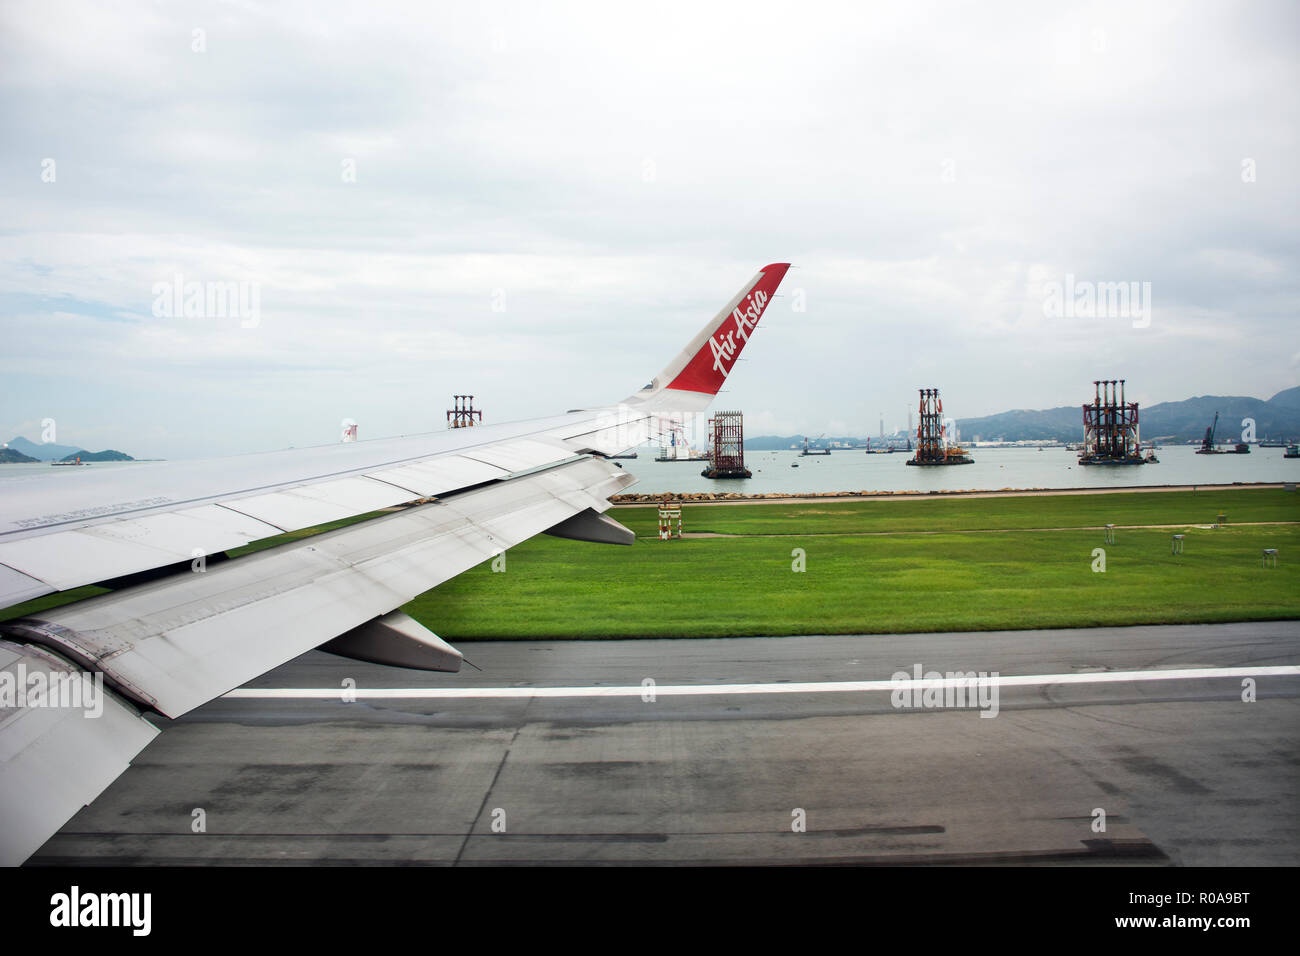 Airbus landing on runway for bring Chinese people and foreigner travelers from Bangkok at Hong Kong International Airport on September 3, 2018 in Hong - Stock Image